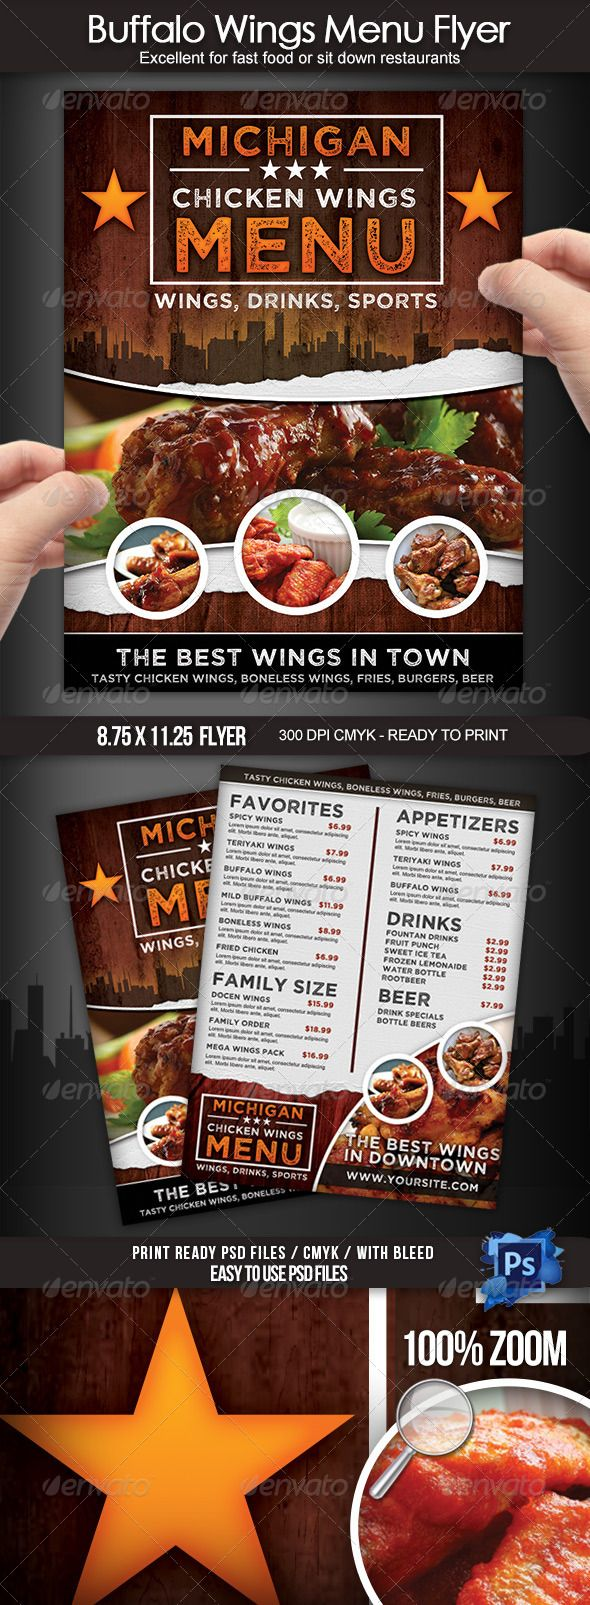 Buffalo Wings Menu Flyer Template #design #speisekarte Download: http://graphicriver.net/item/buffalo-wings-menu-flyer/7680142?ref=ksioks